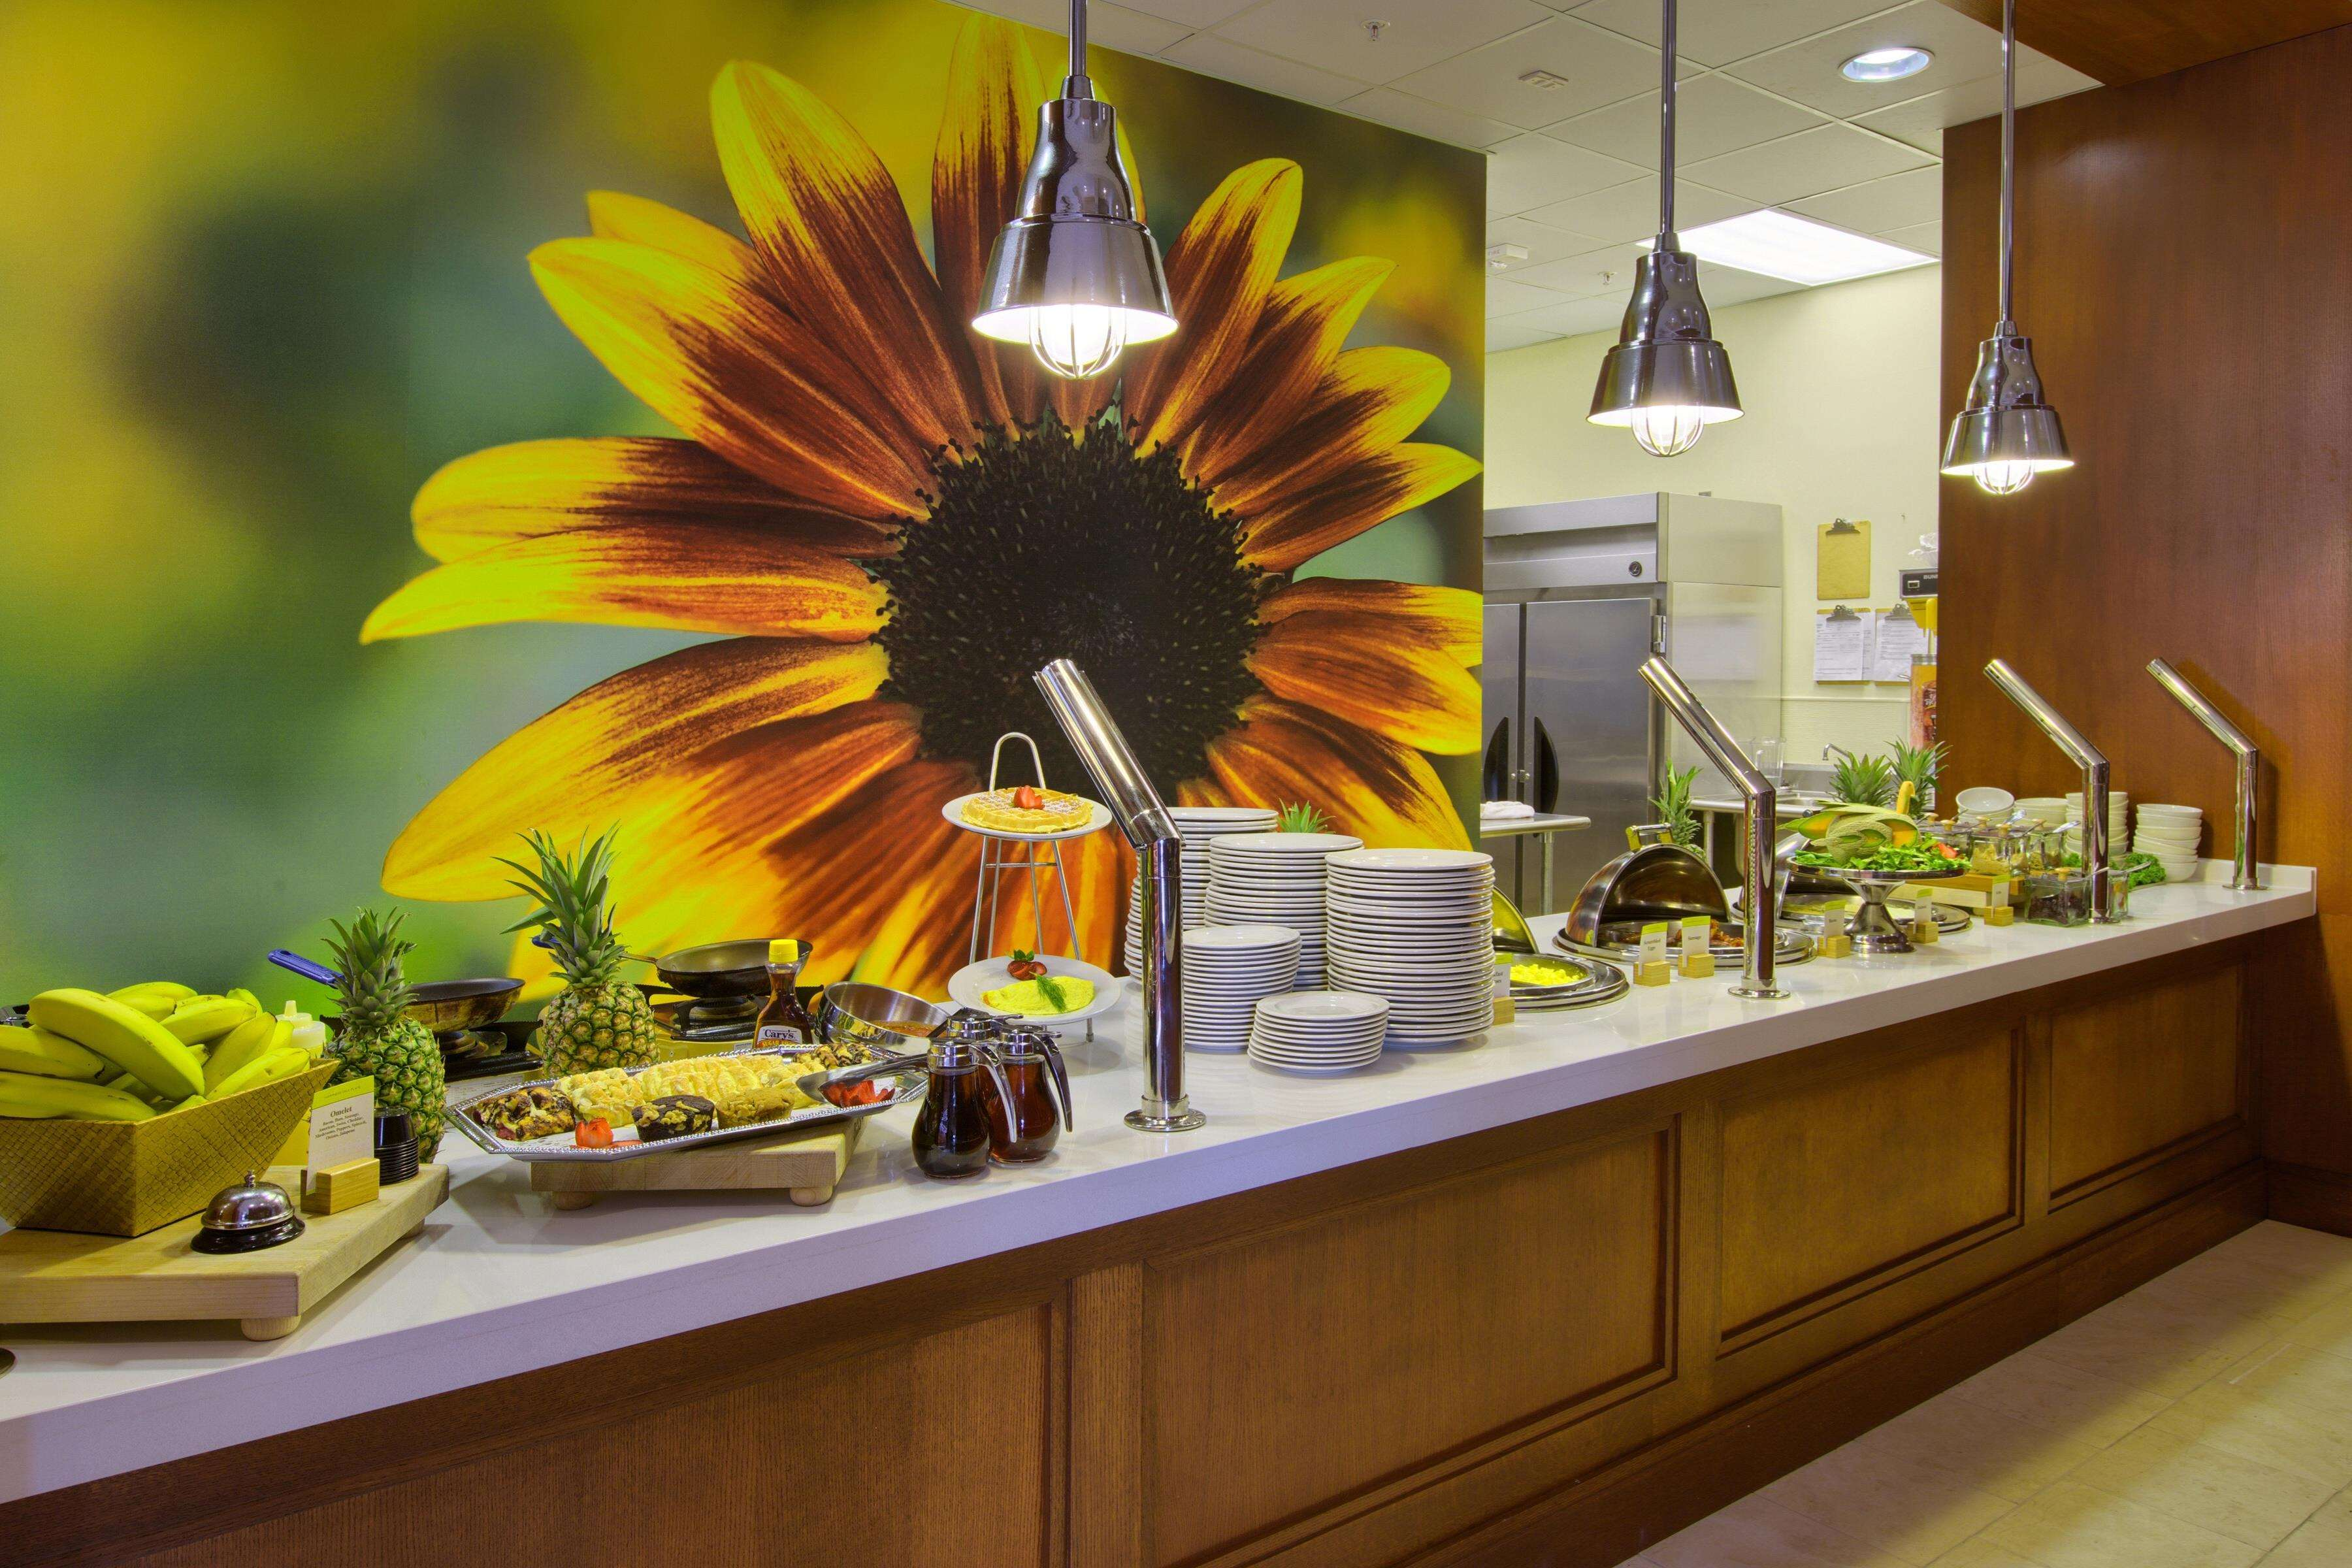 DoubleTree by Hilton Hotel Raleigh - Cary image 6